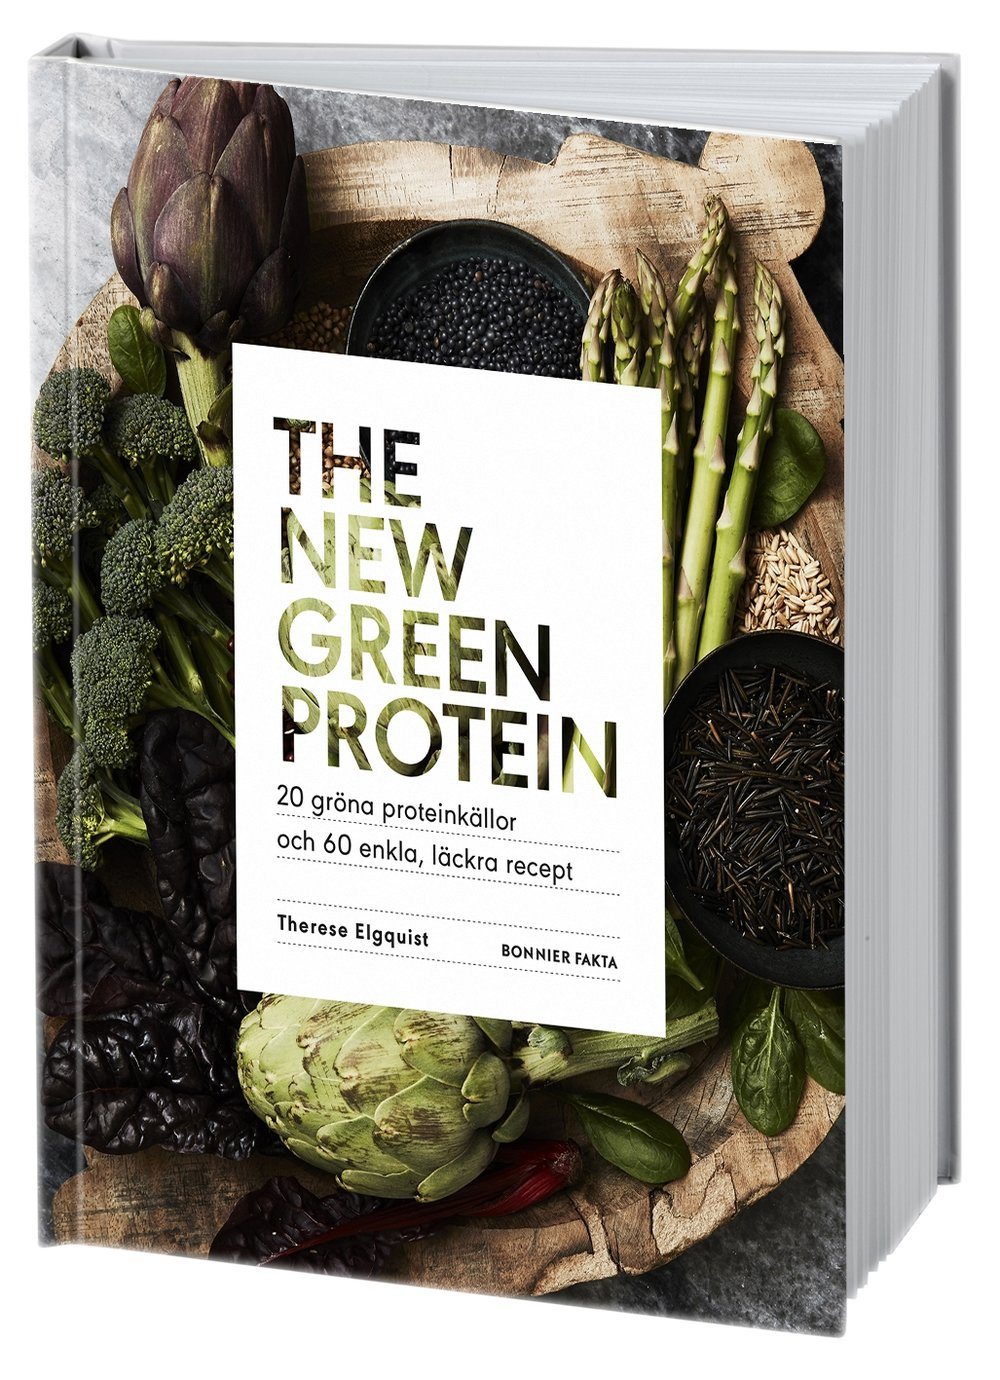 "The new green protein - (Bonnier Fakta)""Between this cover you find everything you'd want to know about plant based protein and what it's all about. But also about good carbs and healthy fats. About minerals and vitamins. Where you find them, why your body really wants and needs them and how to make them more available. Behind this cover you'll also find tricks on how to boost your meals and how to nourish your body with delicious plant based food!!Yet another book filled with recipes on my plant based food philosophy. This time you find food for every meal of the day; quick smoothies and warming porridges for both weekday and weekend breakfasts, light but also hearty lunches and dinners, snacks on the go and smart desserts! Food that are really a hug to your body, mind and soul.My hope is that this book will be a handbook for you who want to explore the plant based world even more - or for the first time, feeling comfortable knowing you can get all the nutrients and satisfaction your body needs from a plant based diet - no matter if you eat plant based food every day or some days""With love,Thess"